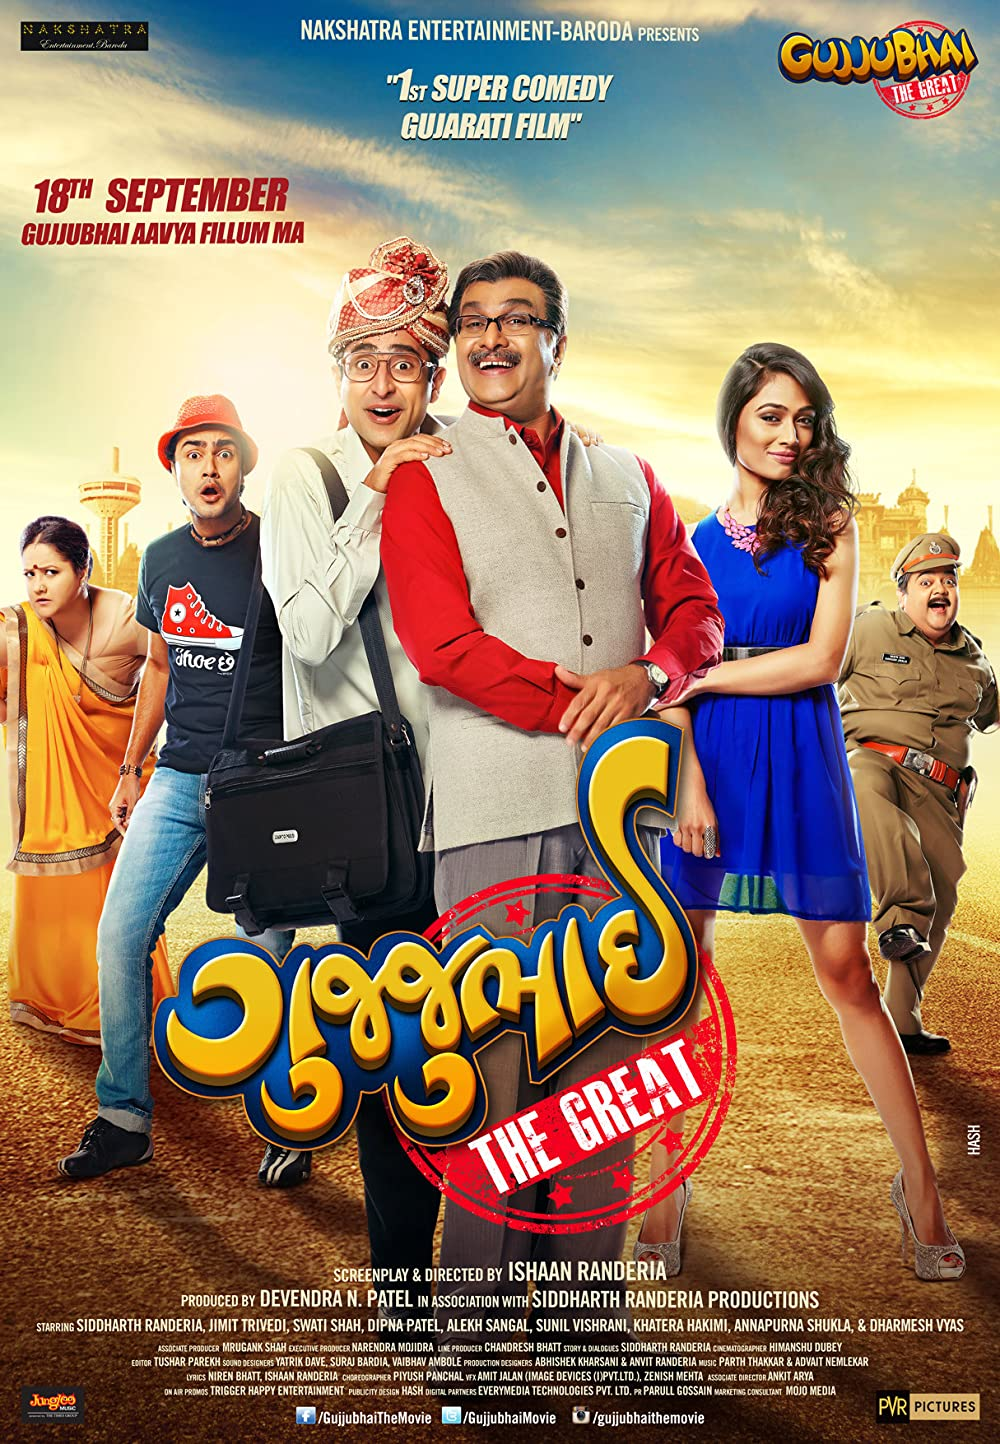 Gujjubhai the Great 2015 Gujarati 720p HDRip ESubs 900MB Download